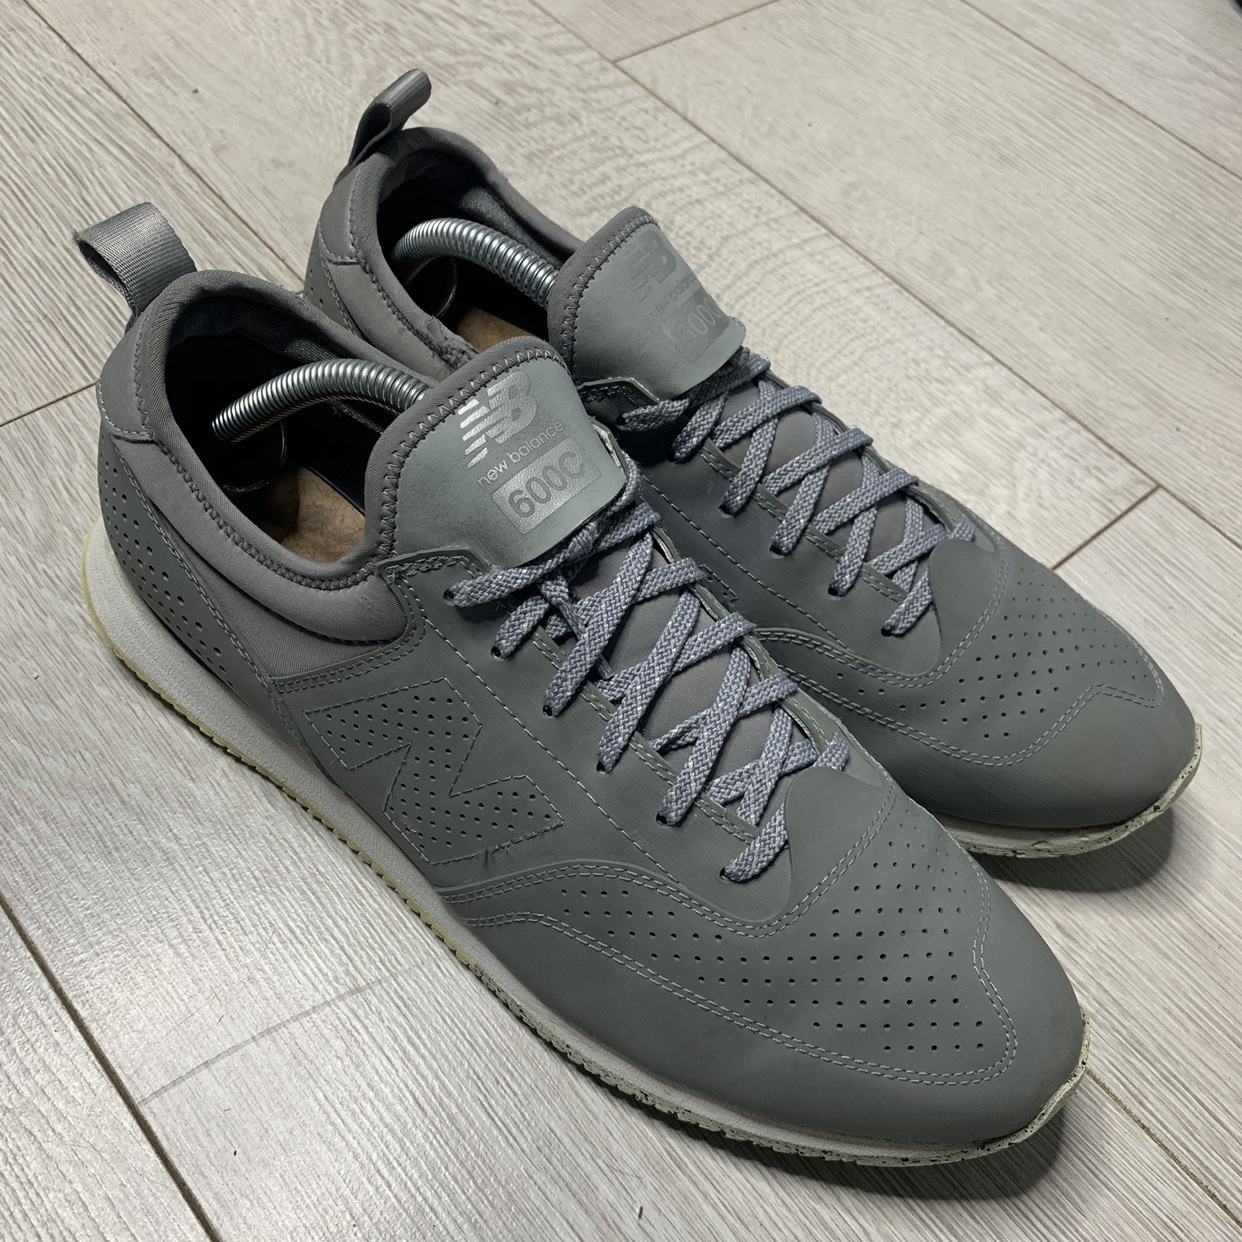 New Balance 600C Size 10 EU 44.5. Trainers have been...